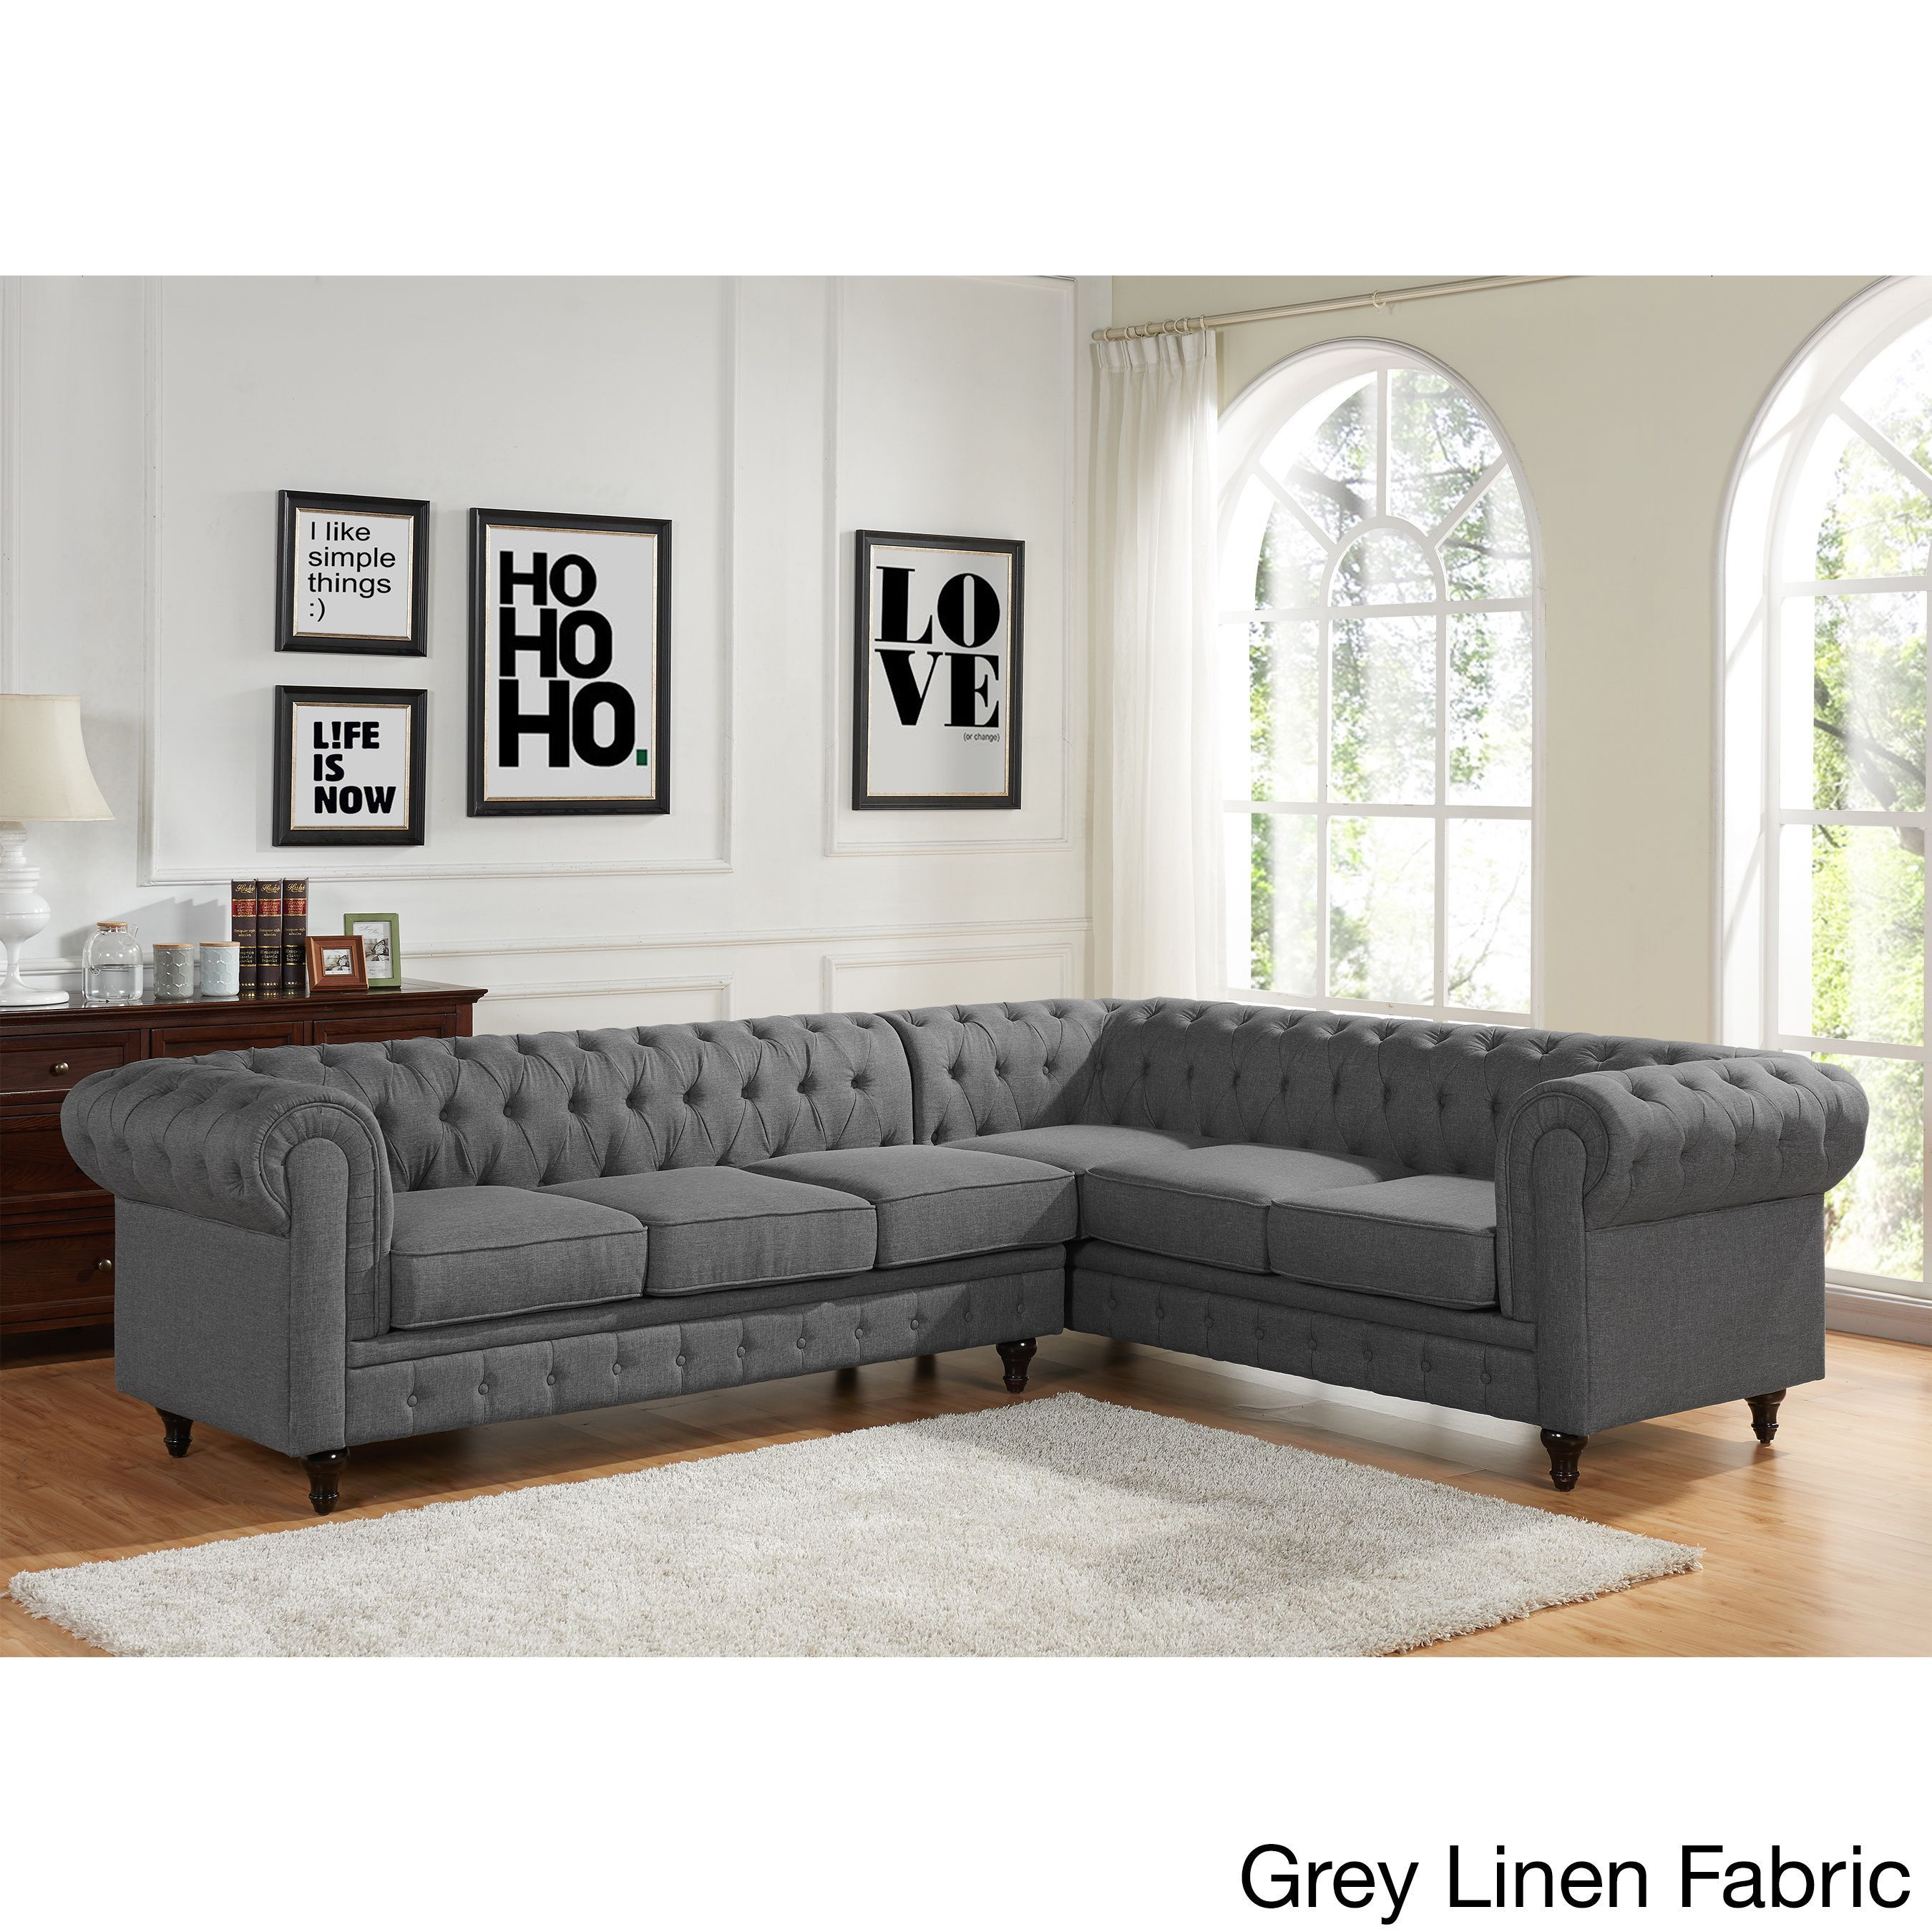 tufted leather sofa with rolled arms lee sofas us pride furniture sophia modern style arm